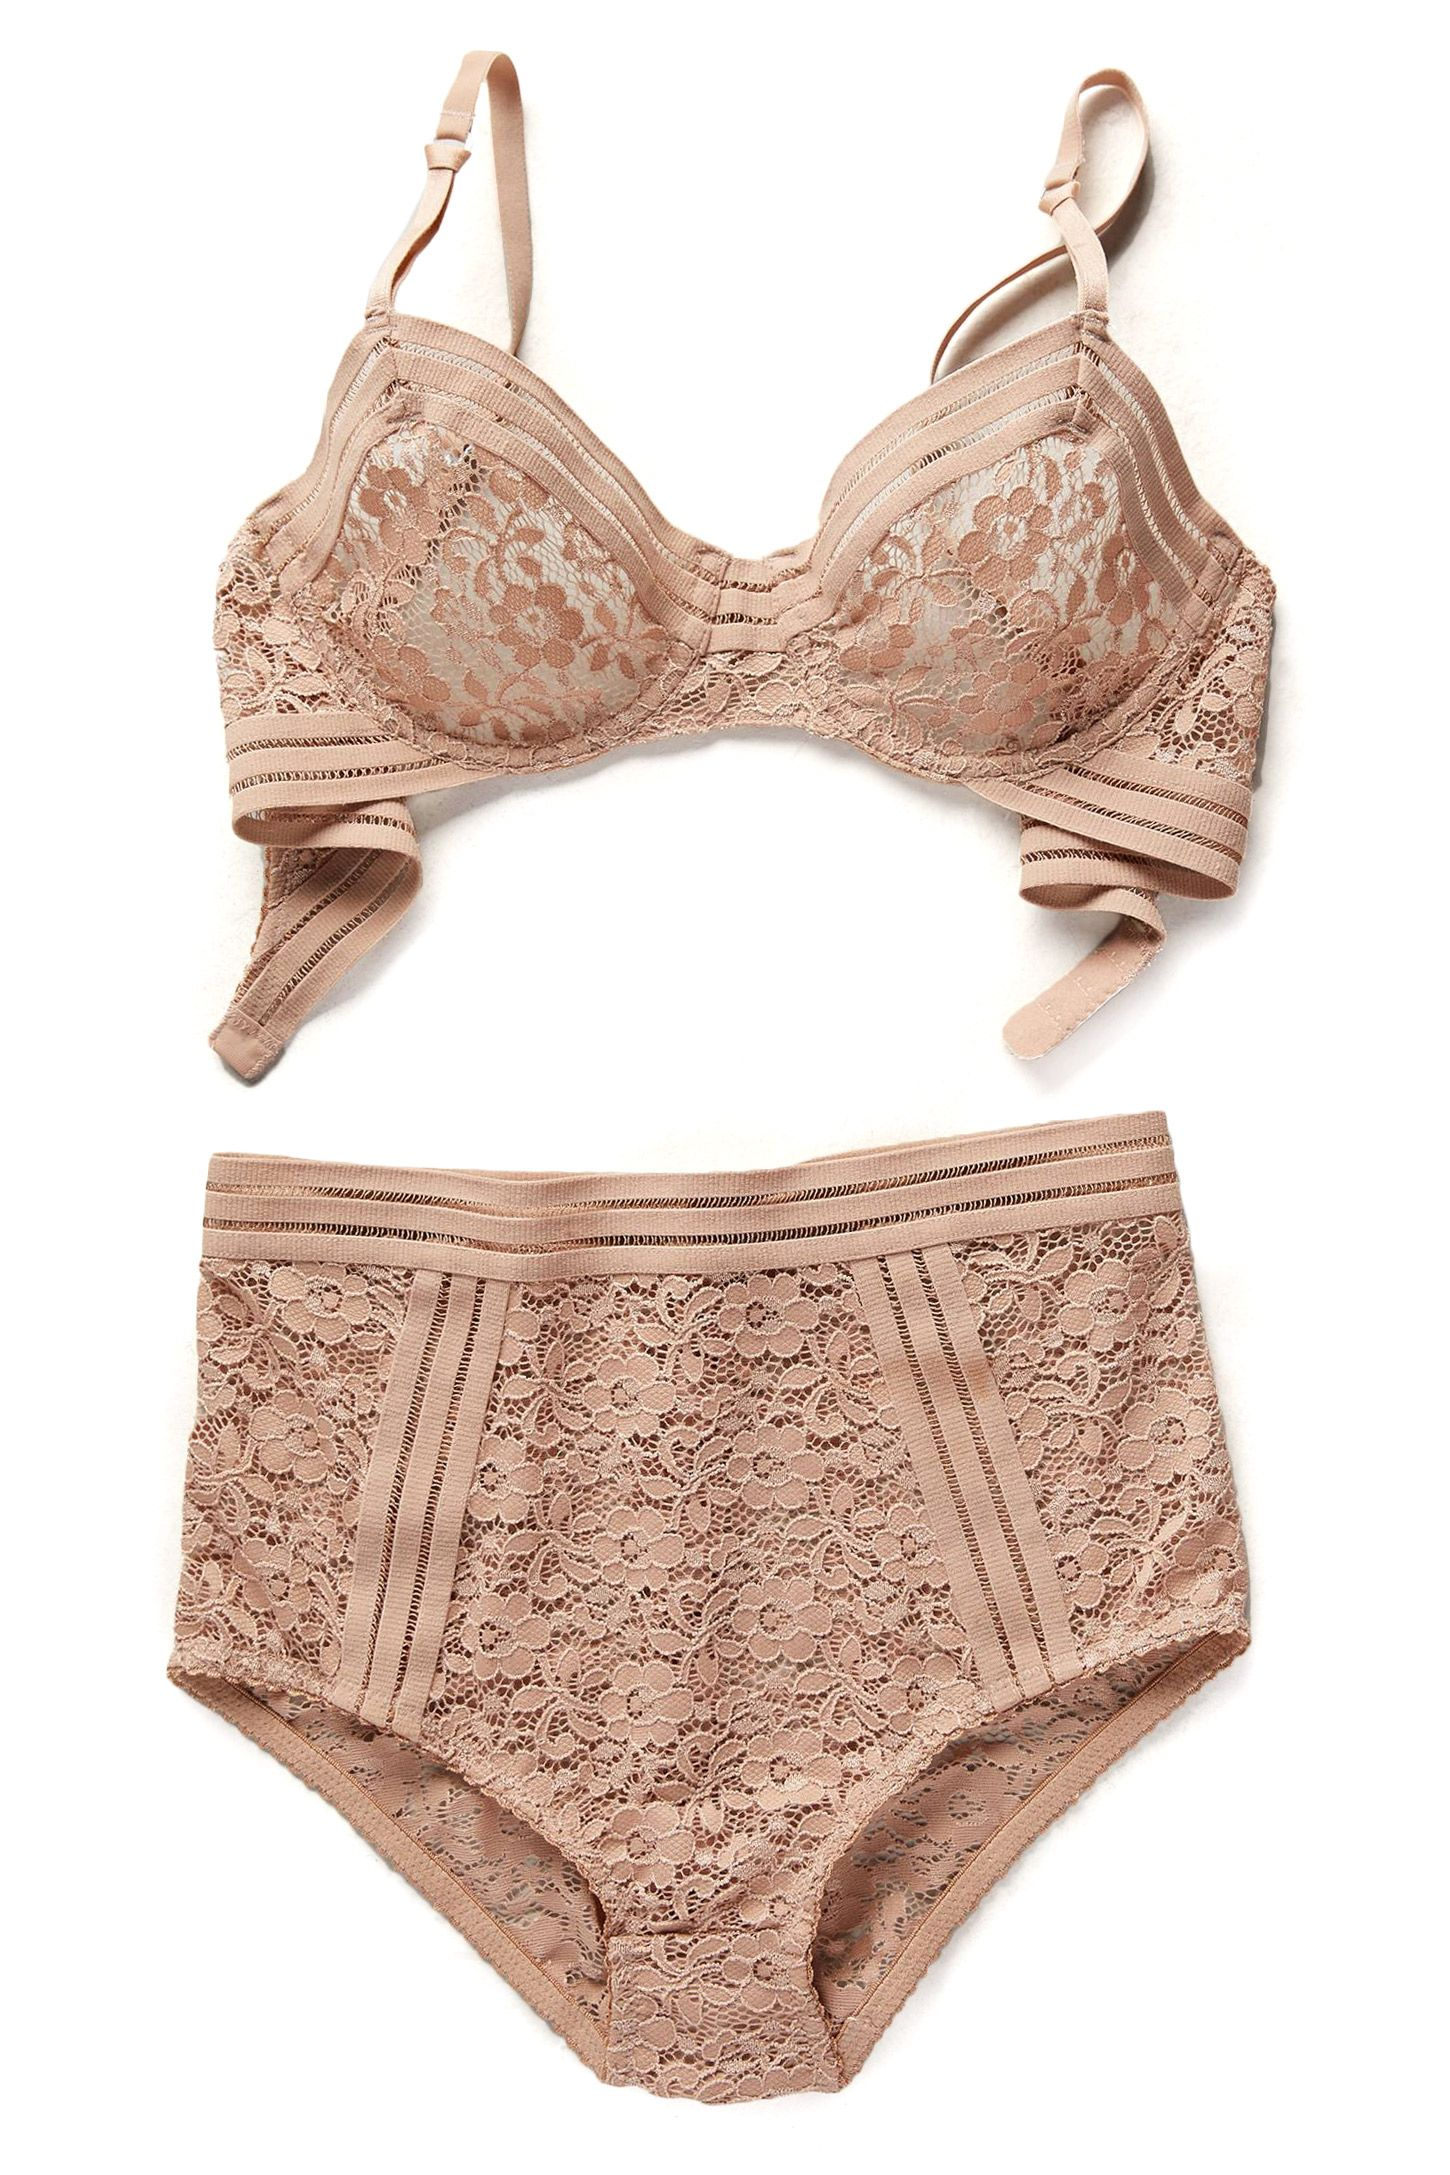 "<p>Lonely Agnes Underwire Bra, $86&#x3B; <a href=""http://www.anthropologie.com/anthro/product/36267250.jsp#/"" target=""_blank"">anthropologie.com</a></p><p>Lonely Agnes High-Rise Brief, $52&#x3B; <a href=""http://www.anthropologie.com/anthro/pdp/detail.jsp?id=36267466&color=023#/"" target=""_blank"">anthropologie.com</a></p>"